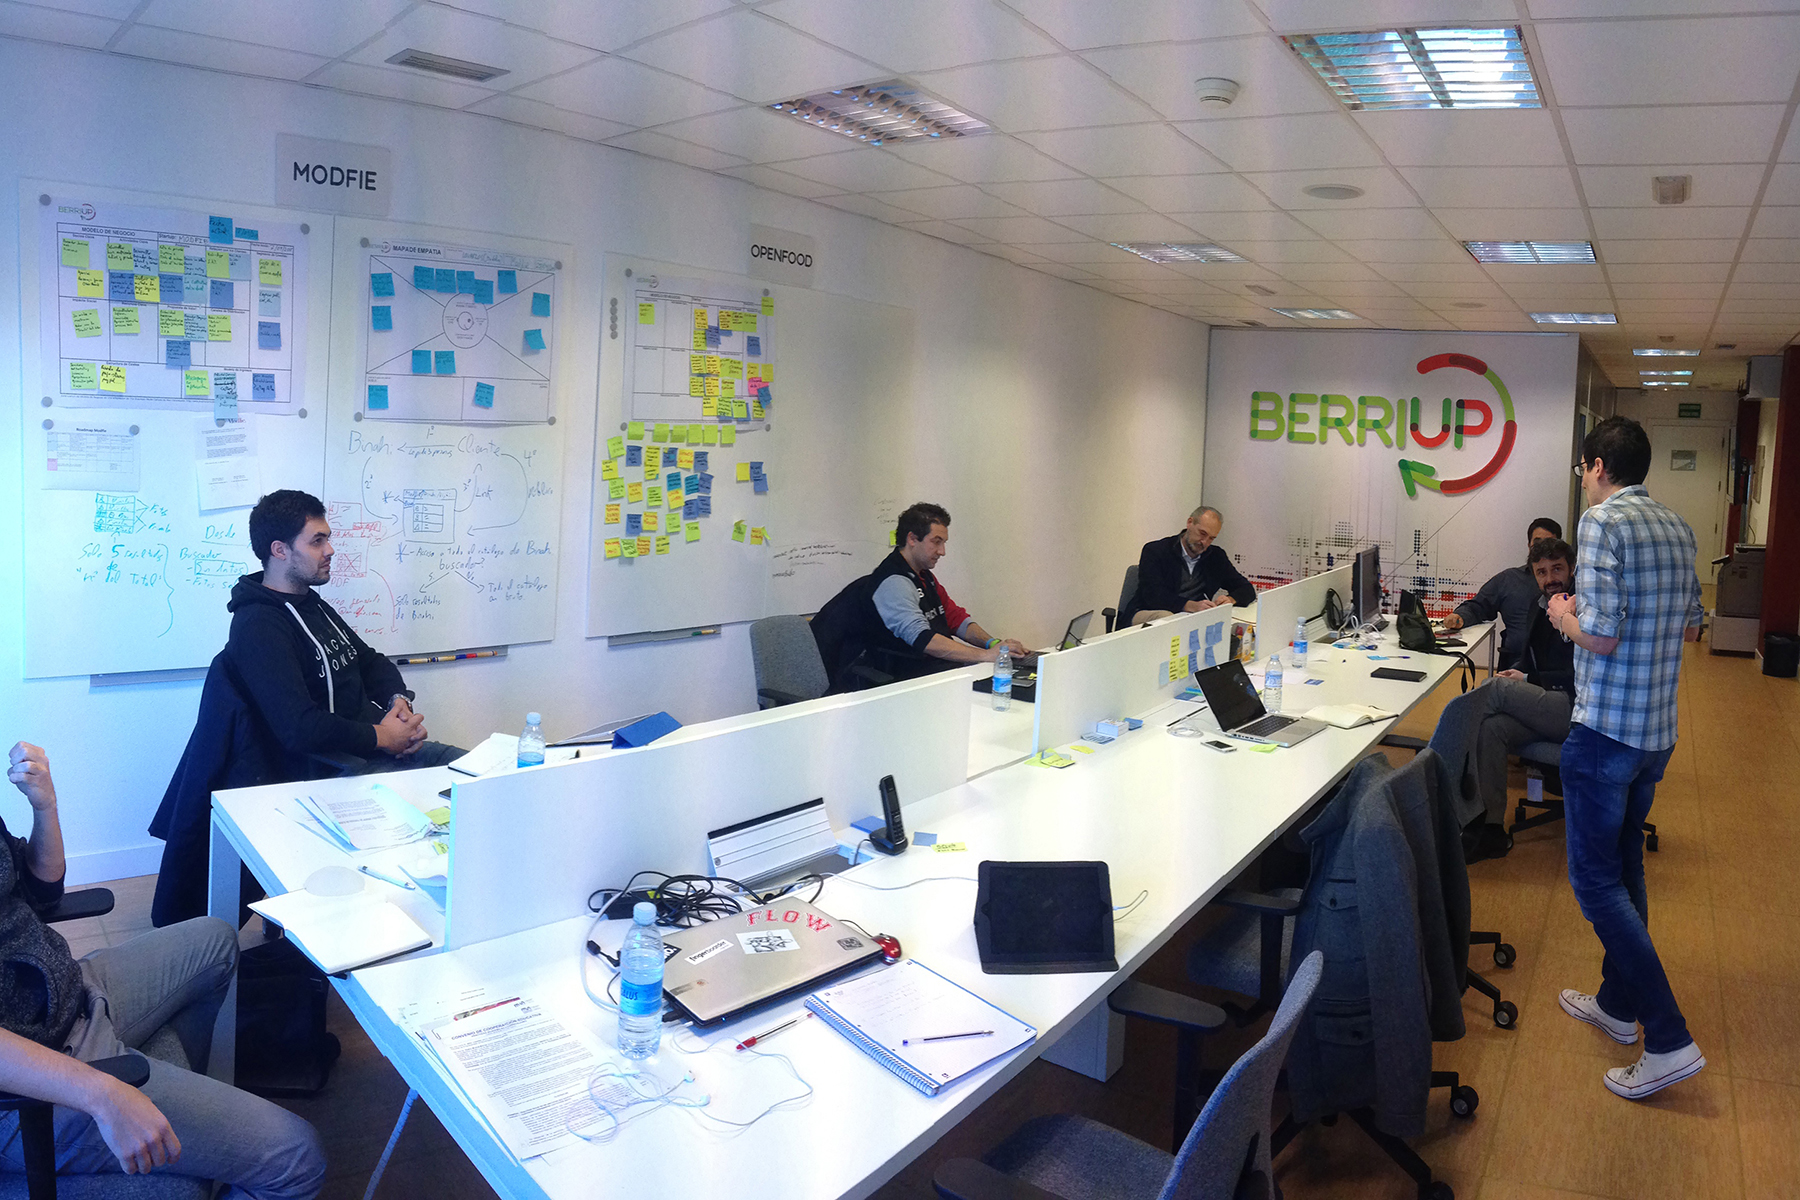 Berriup Accelerator Spain